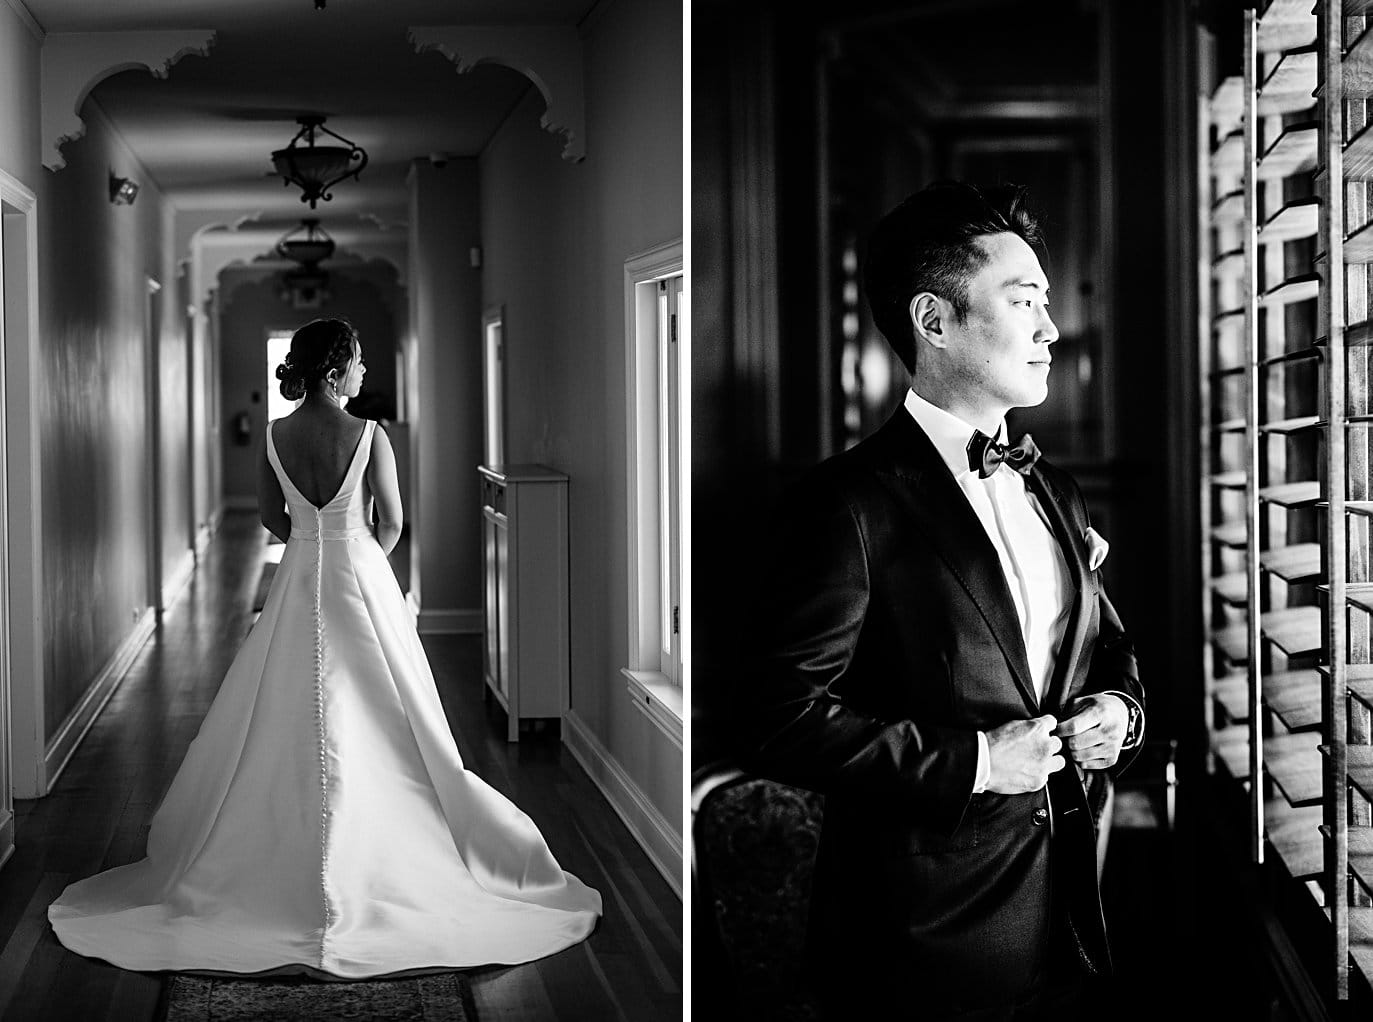 groom and bride dressed by window at Highlands Ranch Mansion wedding by Denver wedding photographer Jennie Crate